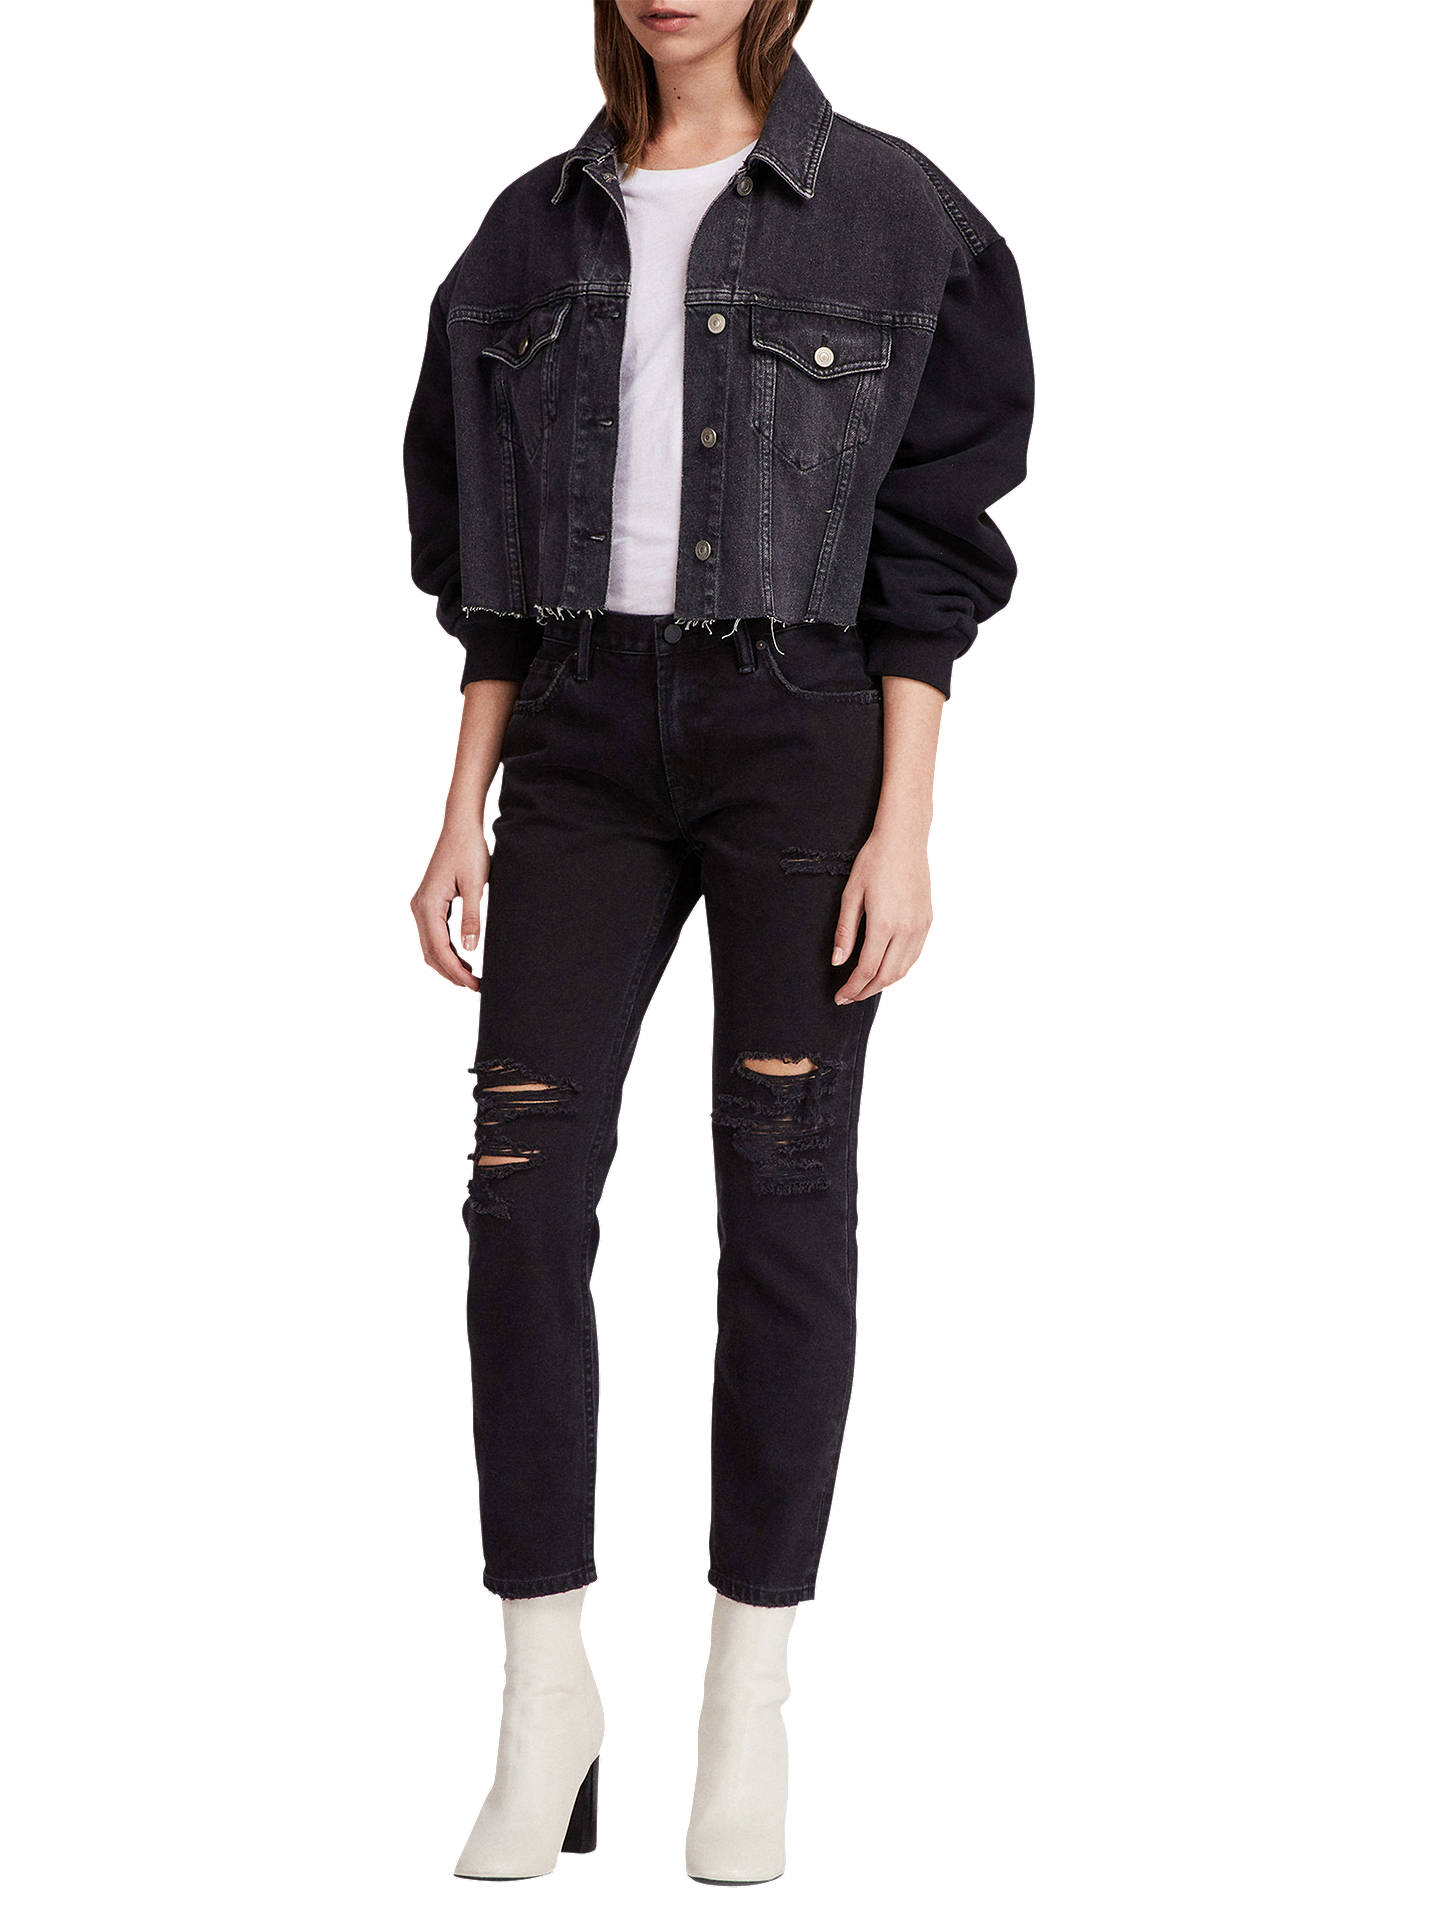 BuyAllSaints Anders Denim Jacket, Washed Black, XS-S Online at johnlewis.com